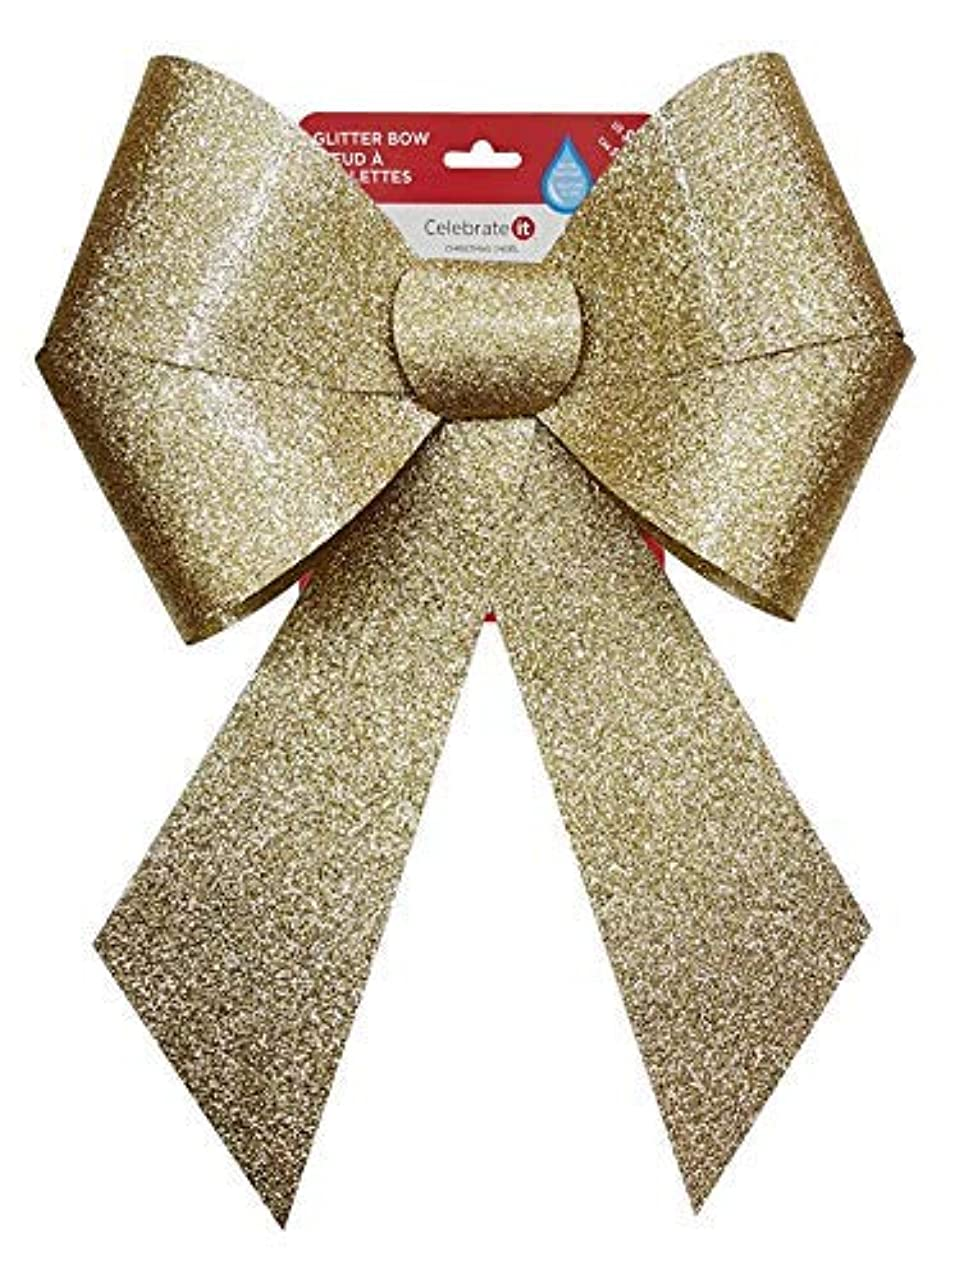 Set of 2 Decorative Red and Gold Glitter Gift Christmas Bows